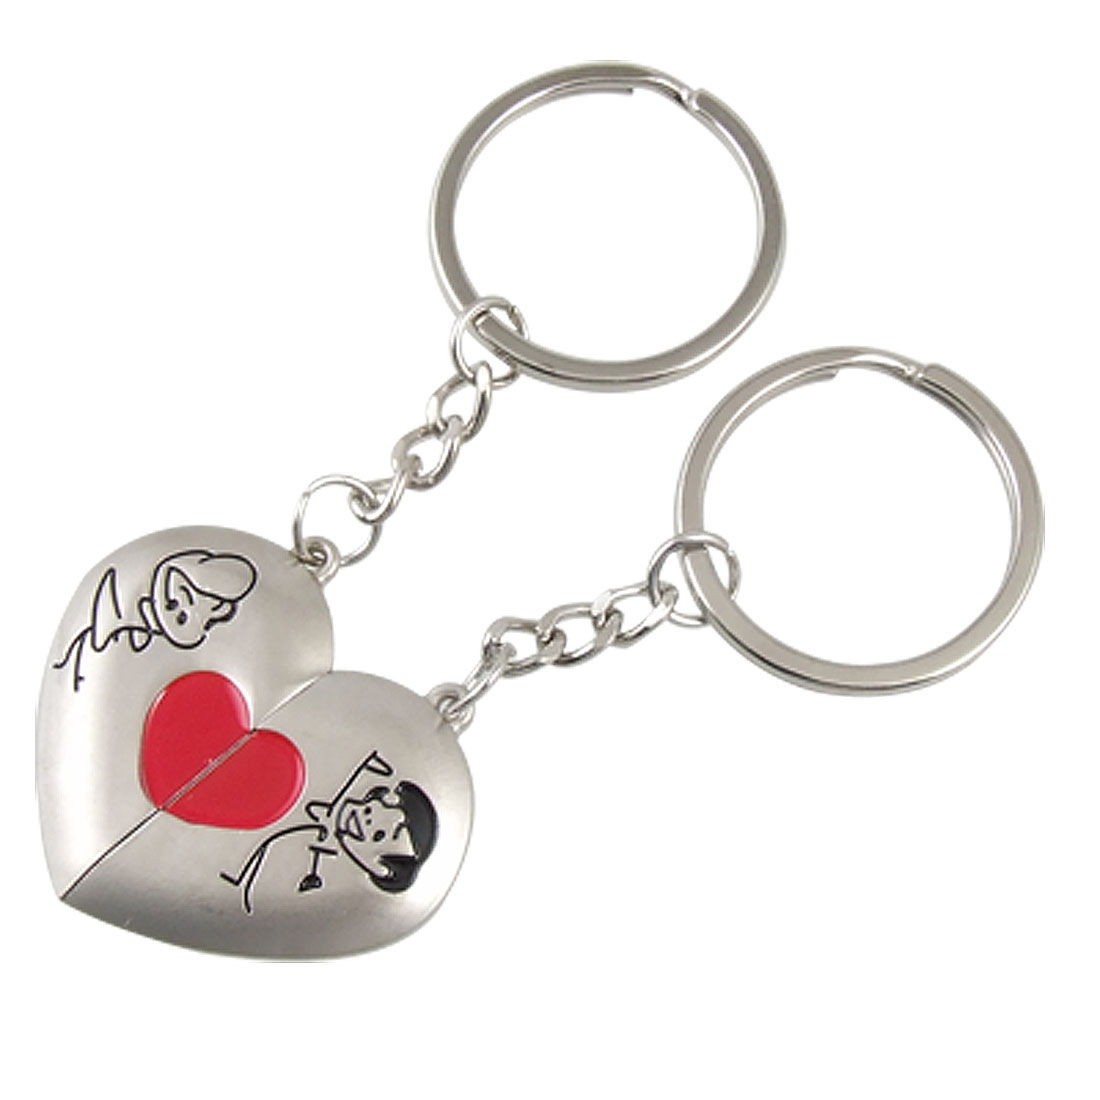 2 Pcs Heart Metal Silver Tone Magnetic Couple Key Ring Chain